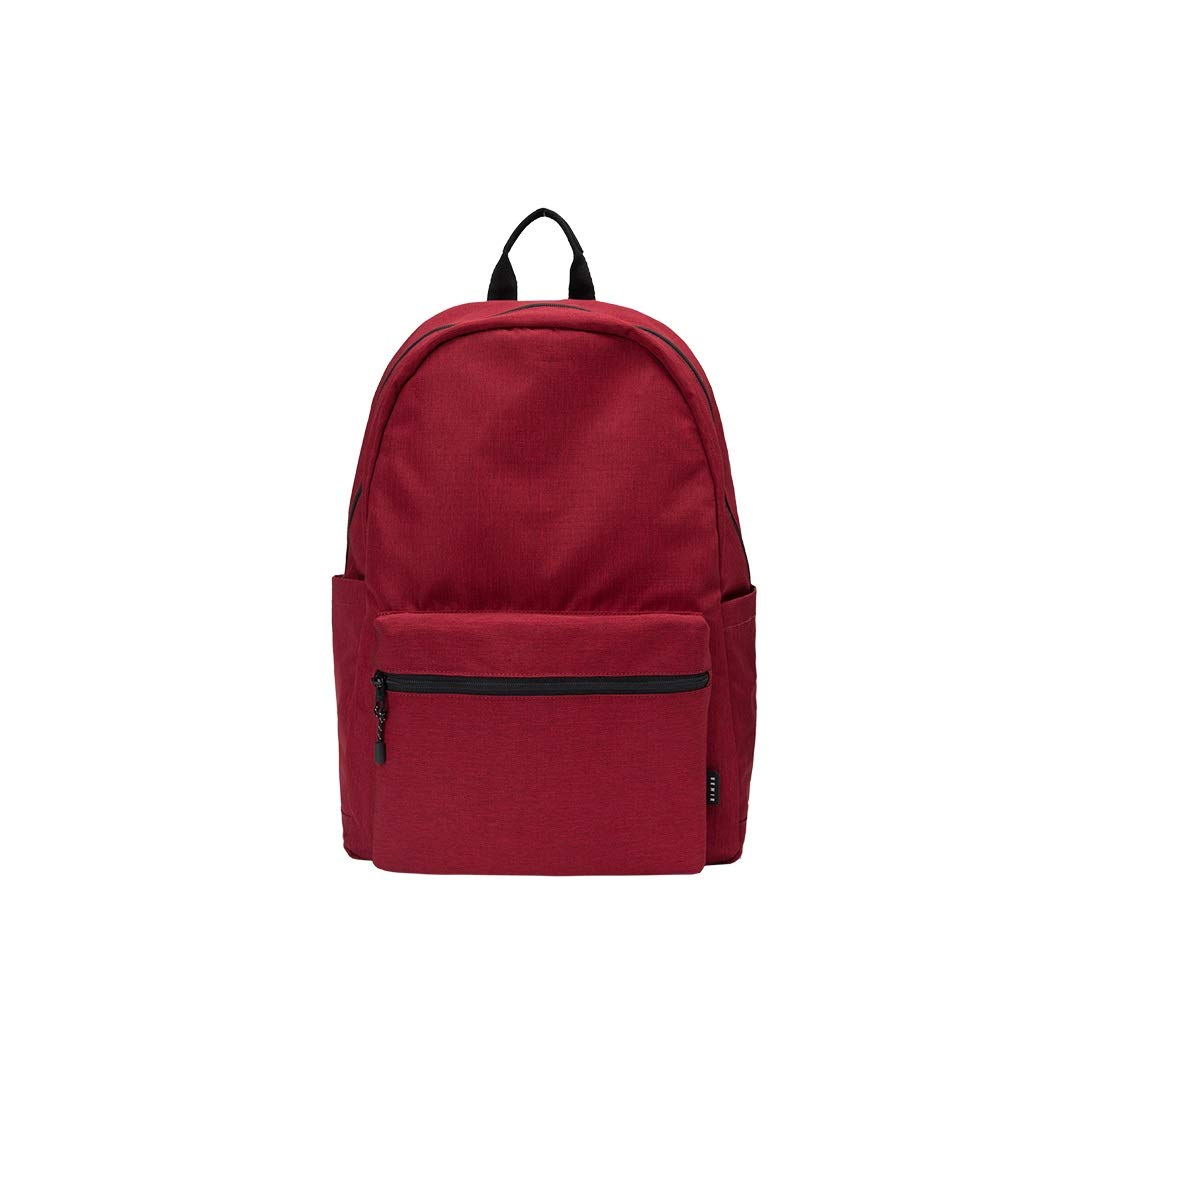 TONGBOSHI Backpack Male, Backpack Casual Simple Trend Travel Bag Female Large Capacity Computer Bag School Bag Male College Student (Color : Red)